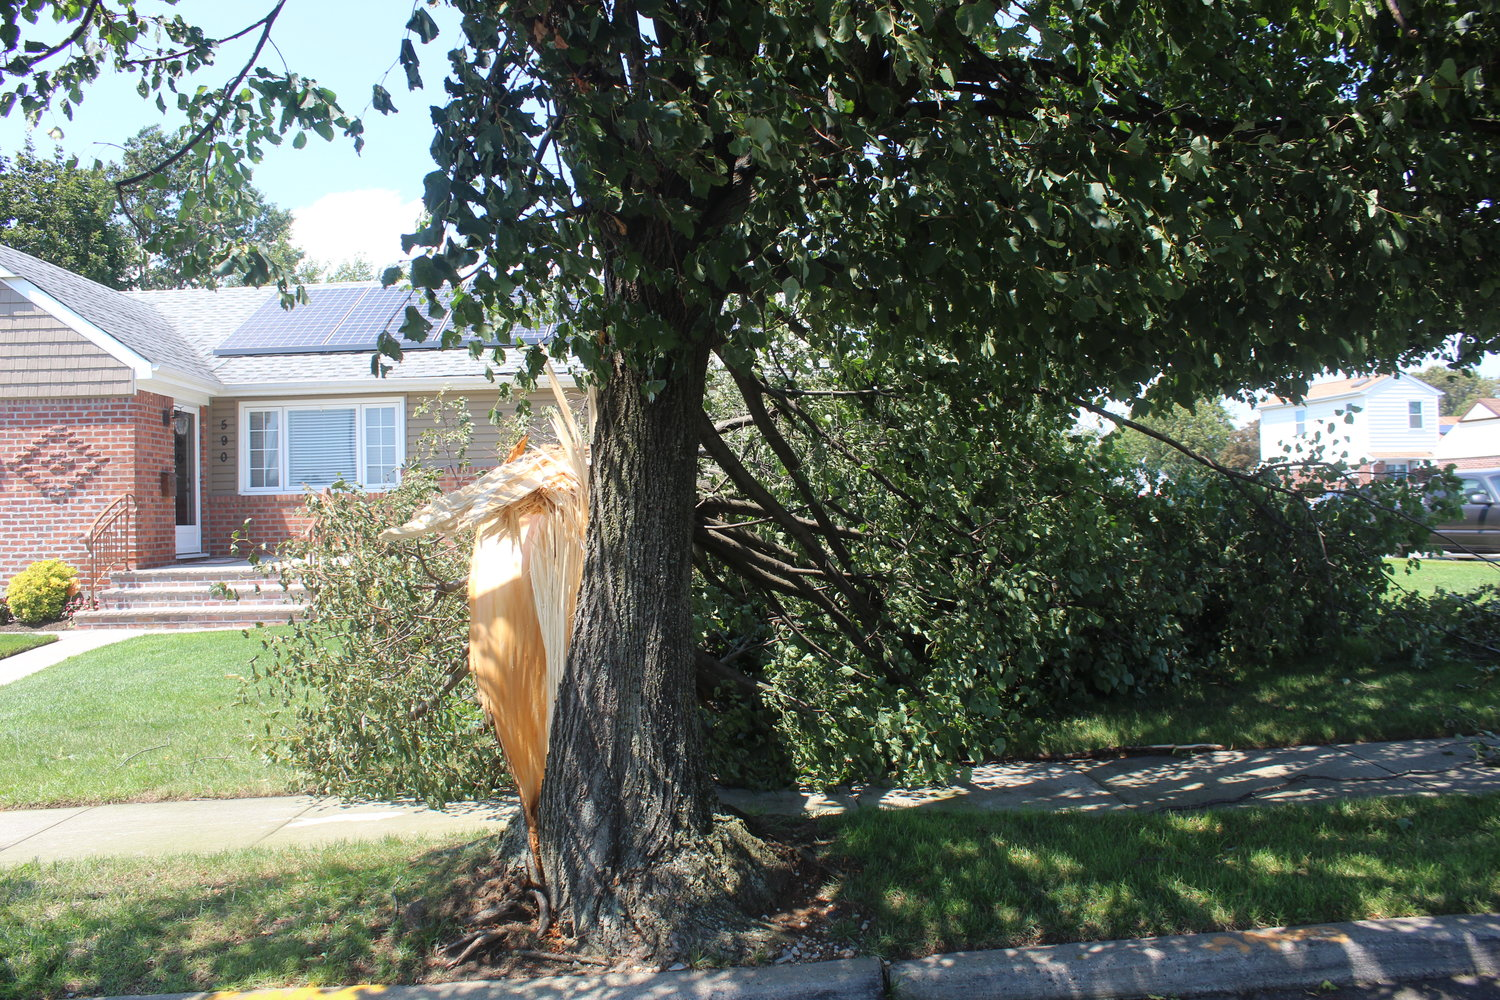 A tree fell in front of a house on Ridge Road in Elmont.